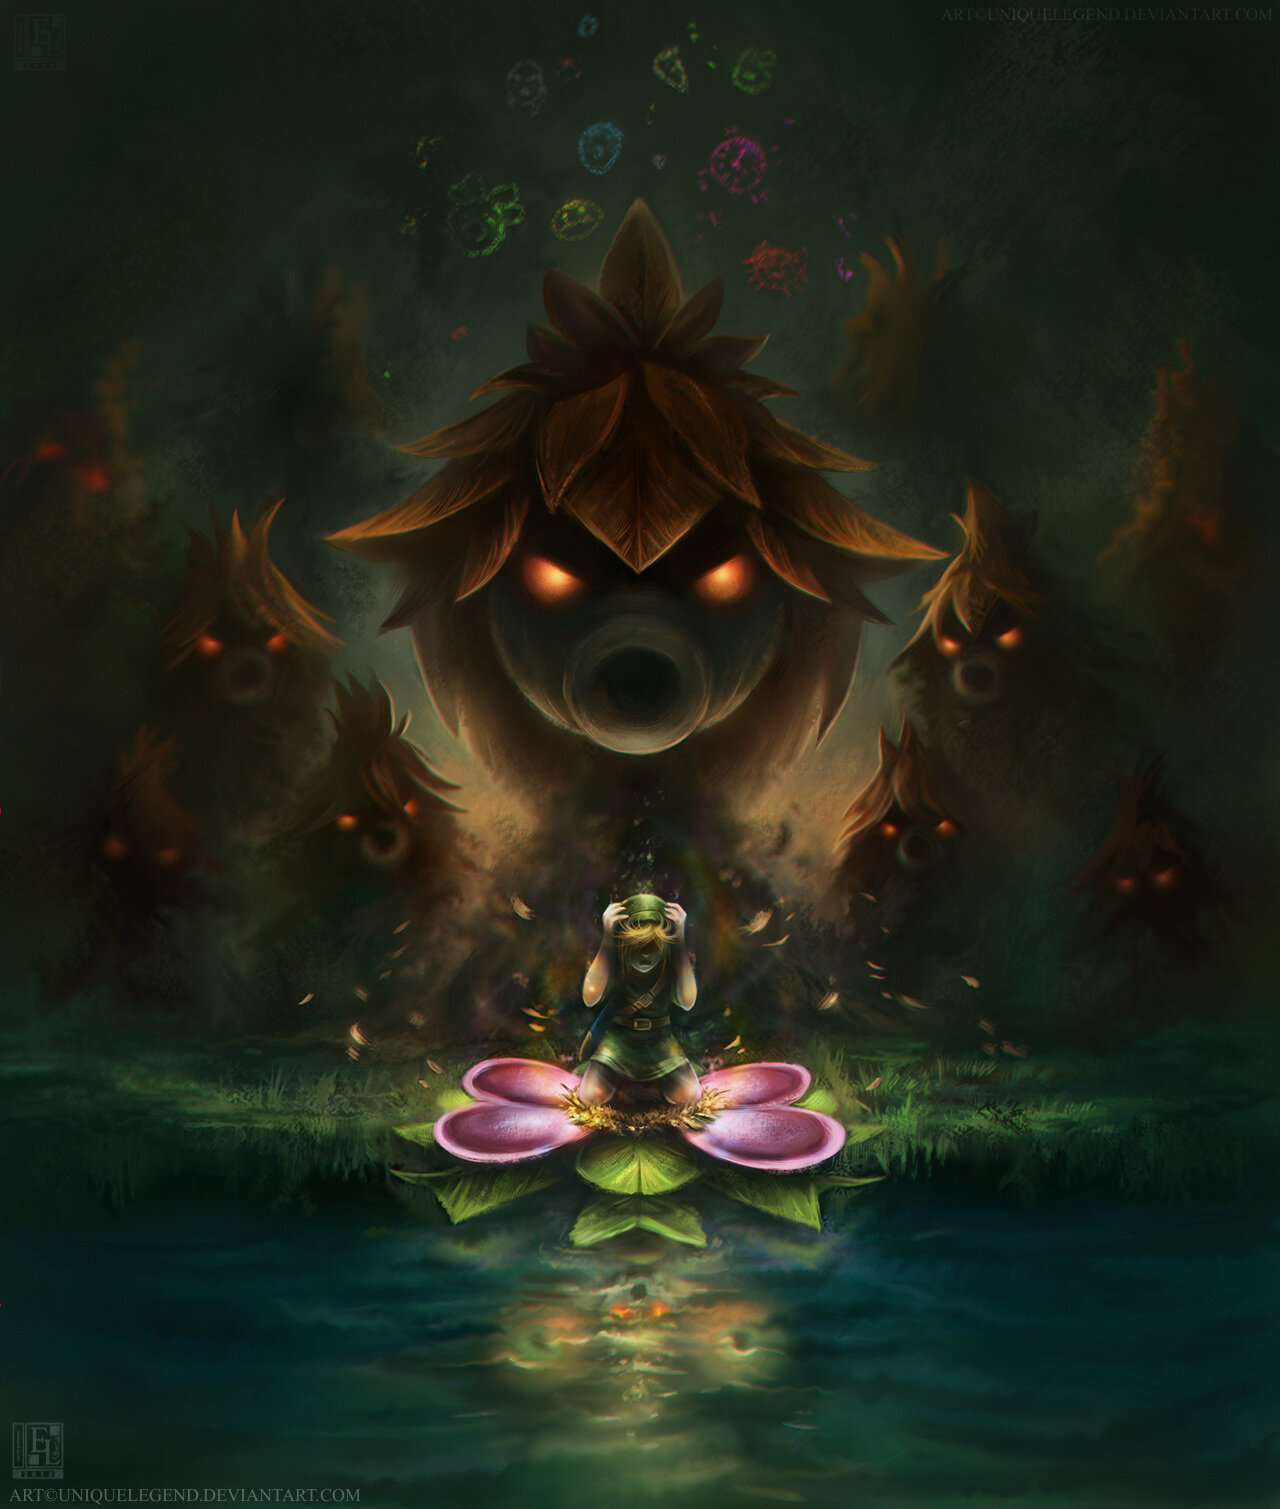 Check out this amazing Majora's Mask artwork by ZU staffer @uniqueLegendEL http://t.co/w0Ili9N9